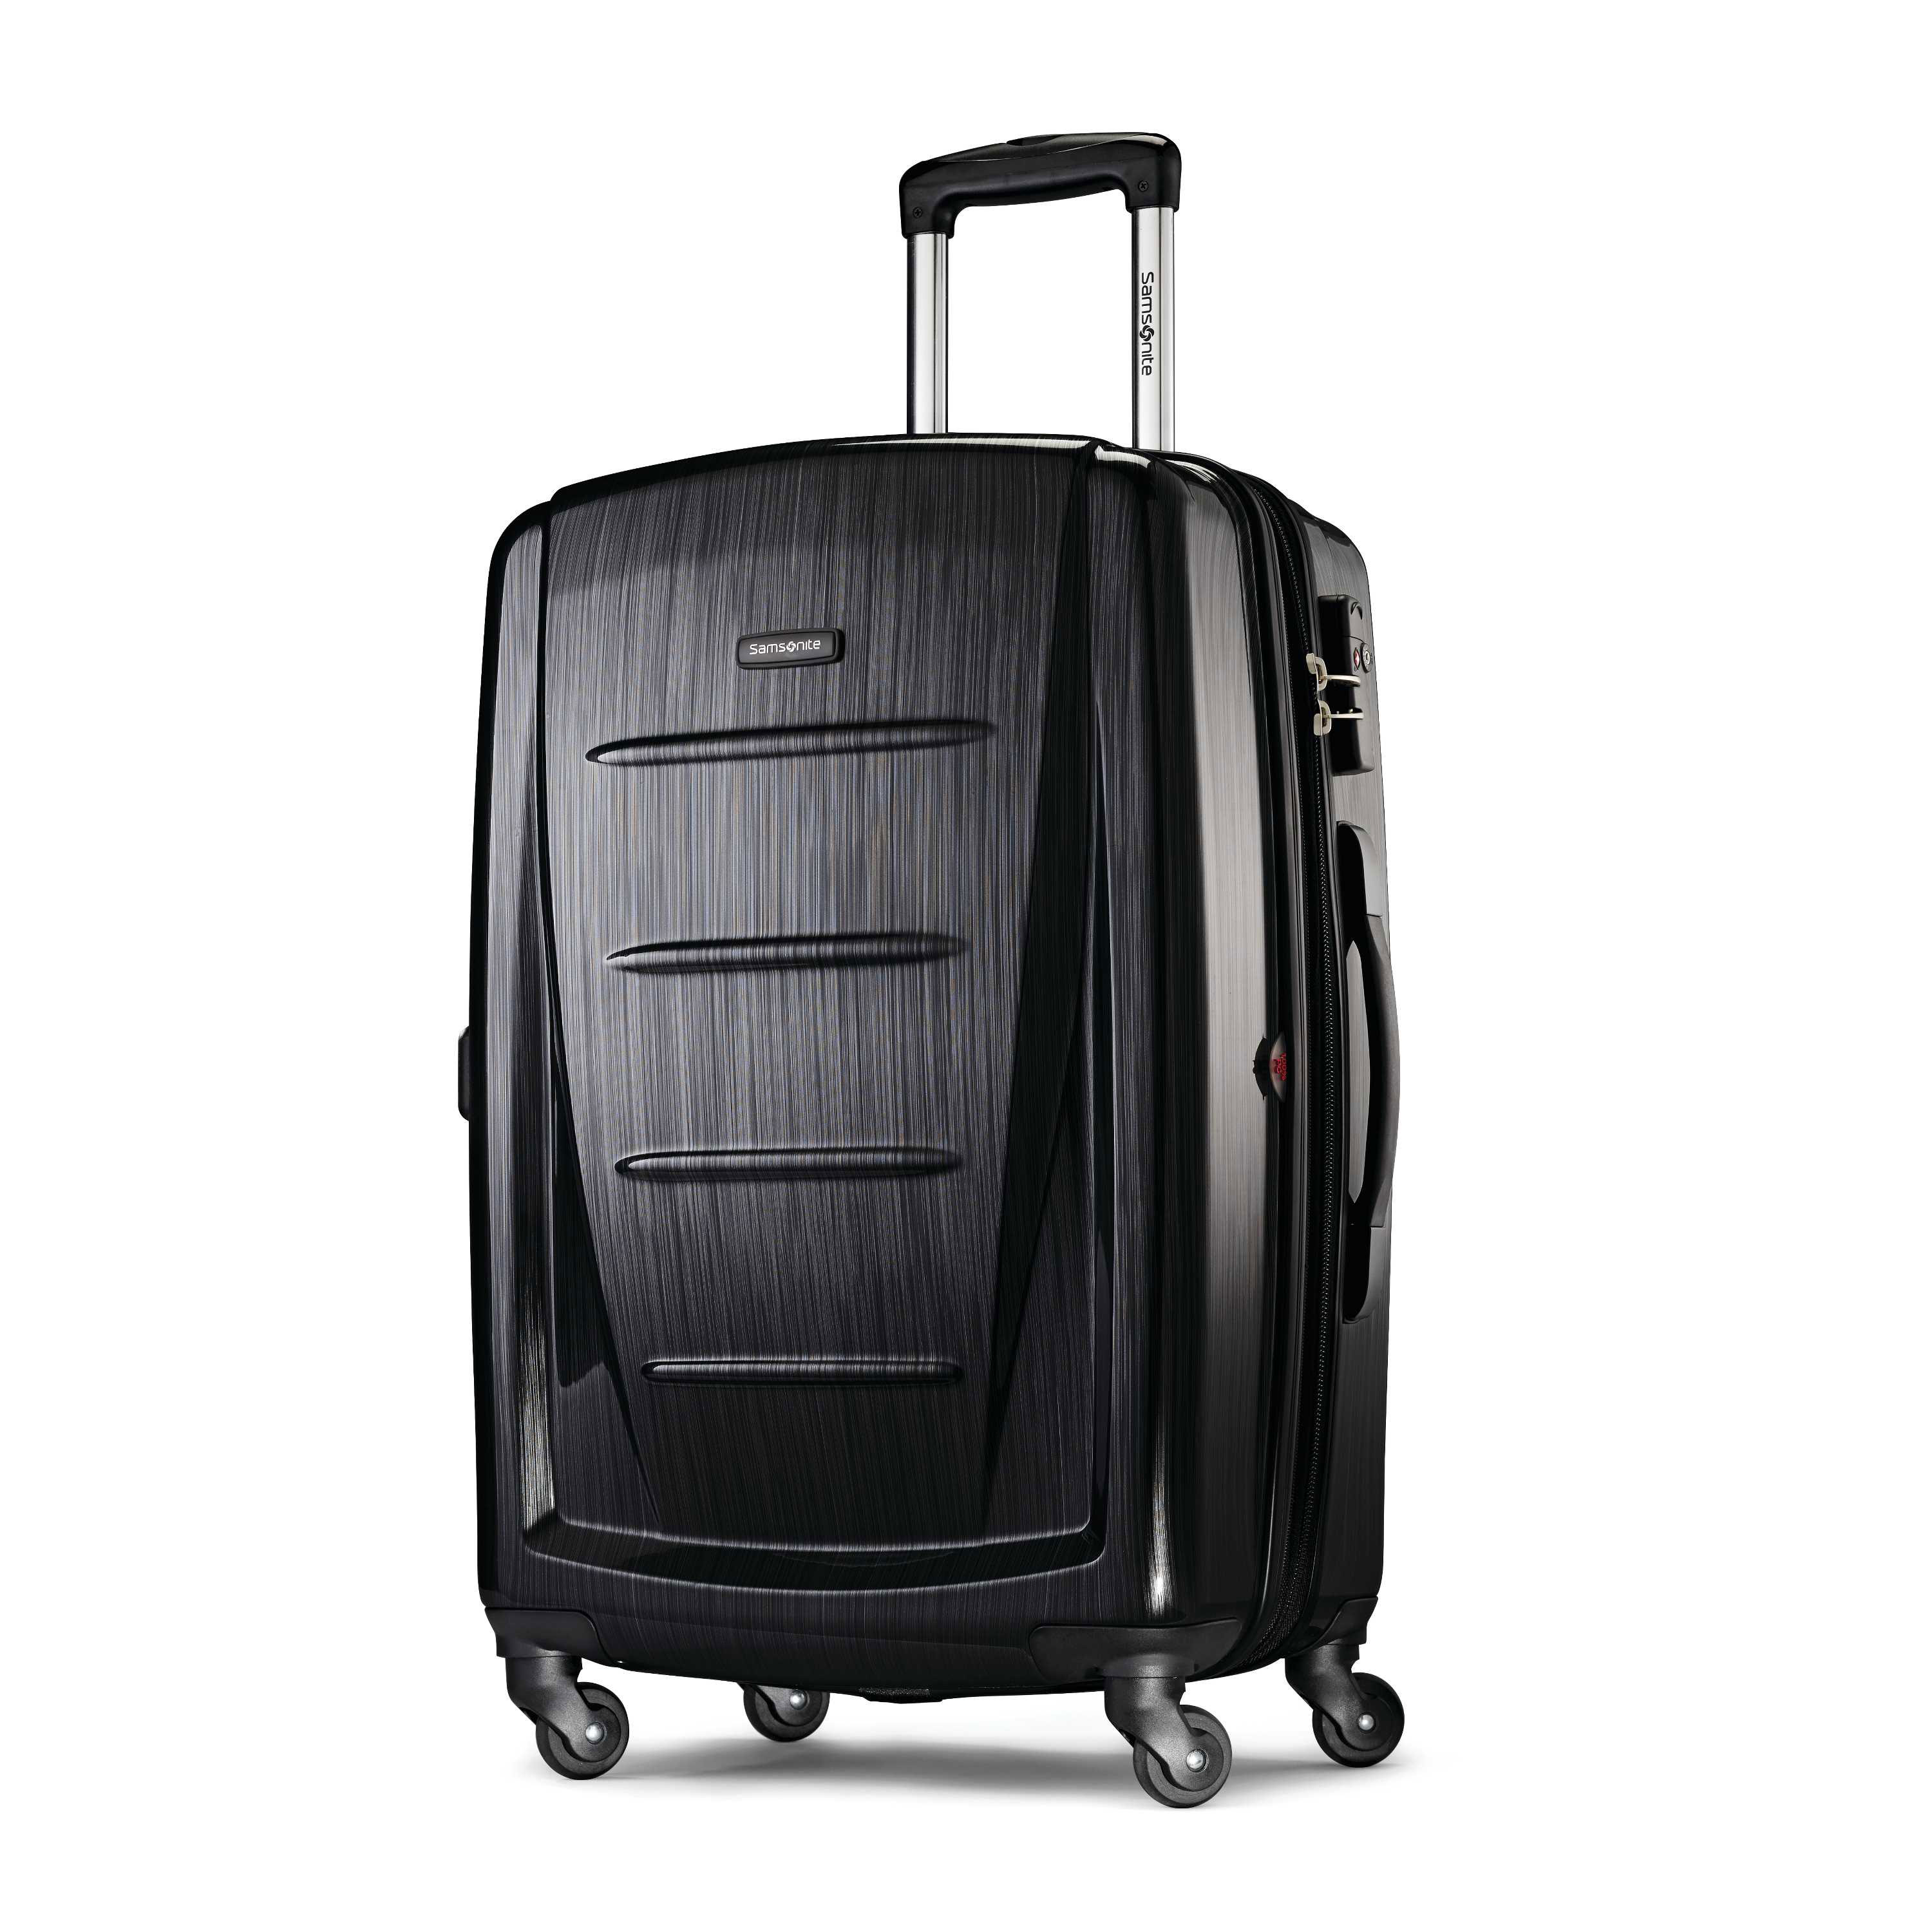 Samsonite-Winfield-2-Fashion-Spinner-Luggage thumbnail 50